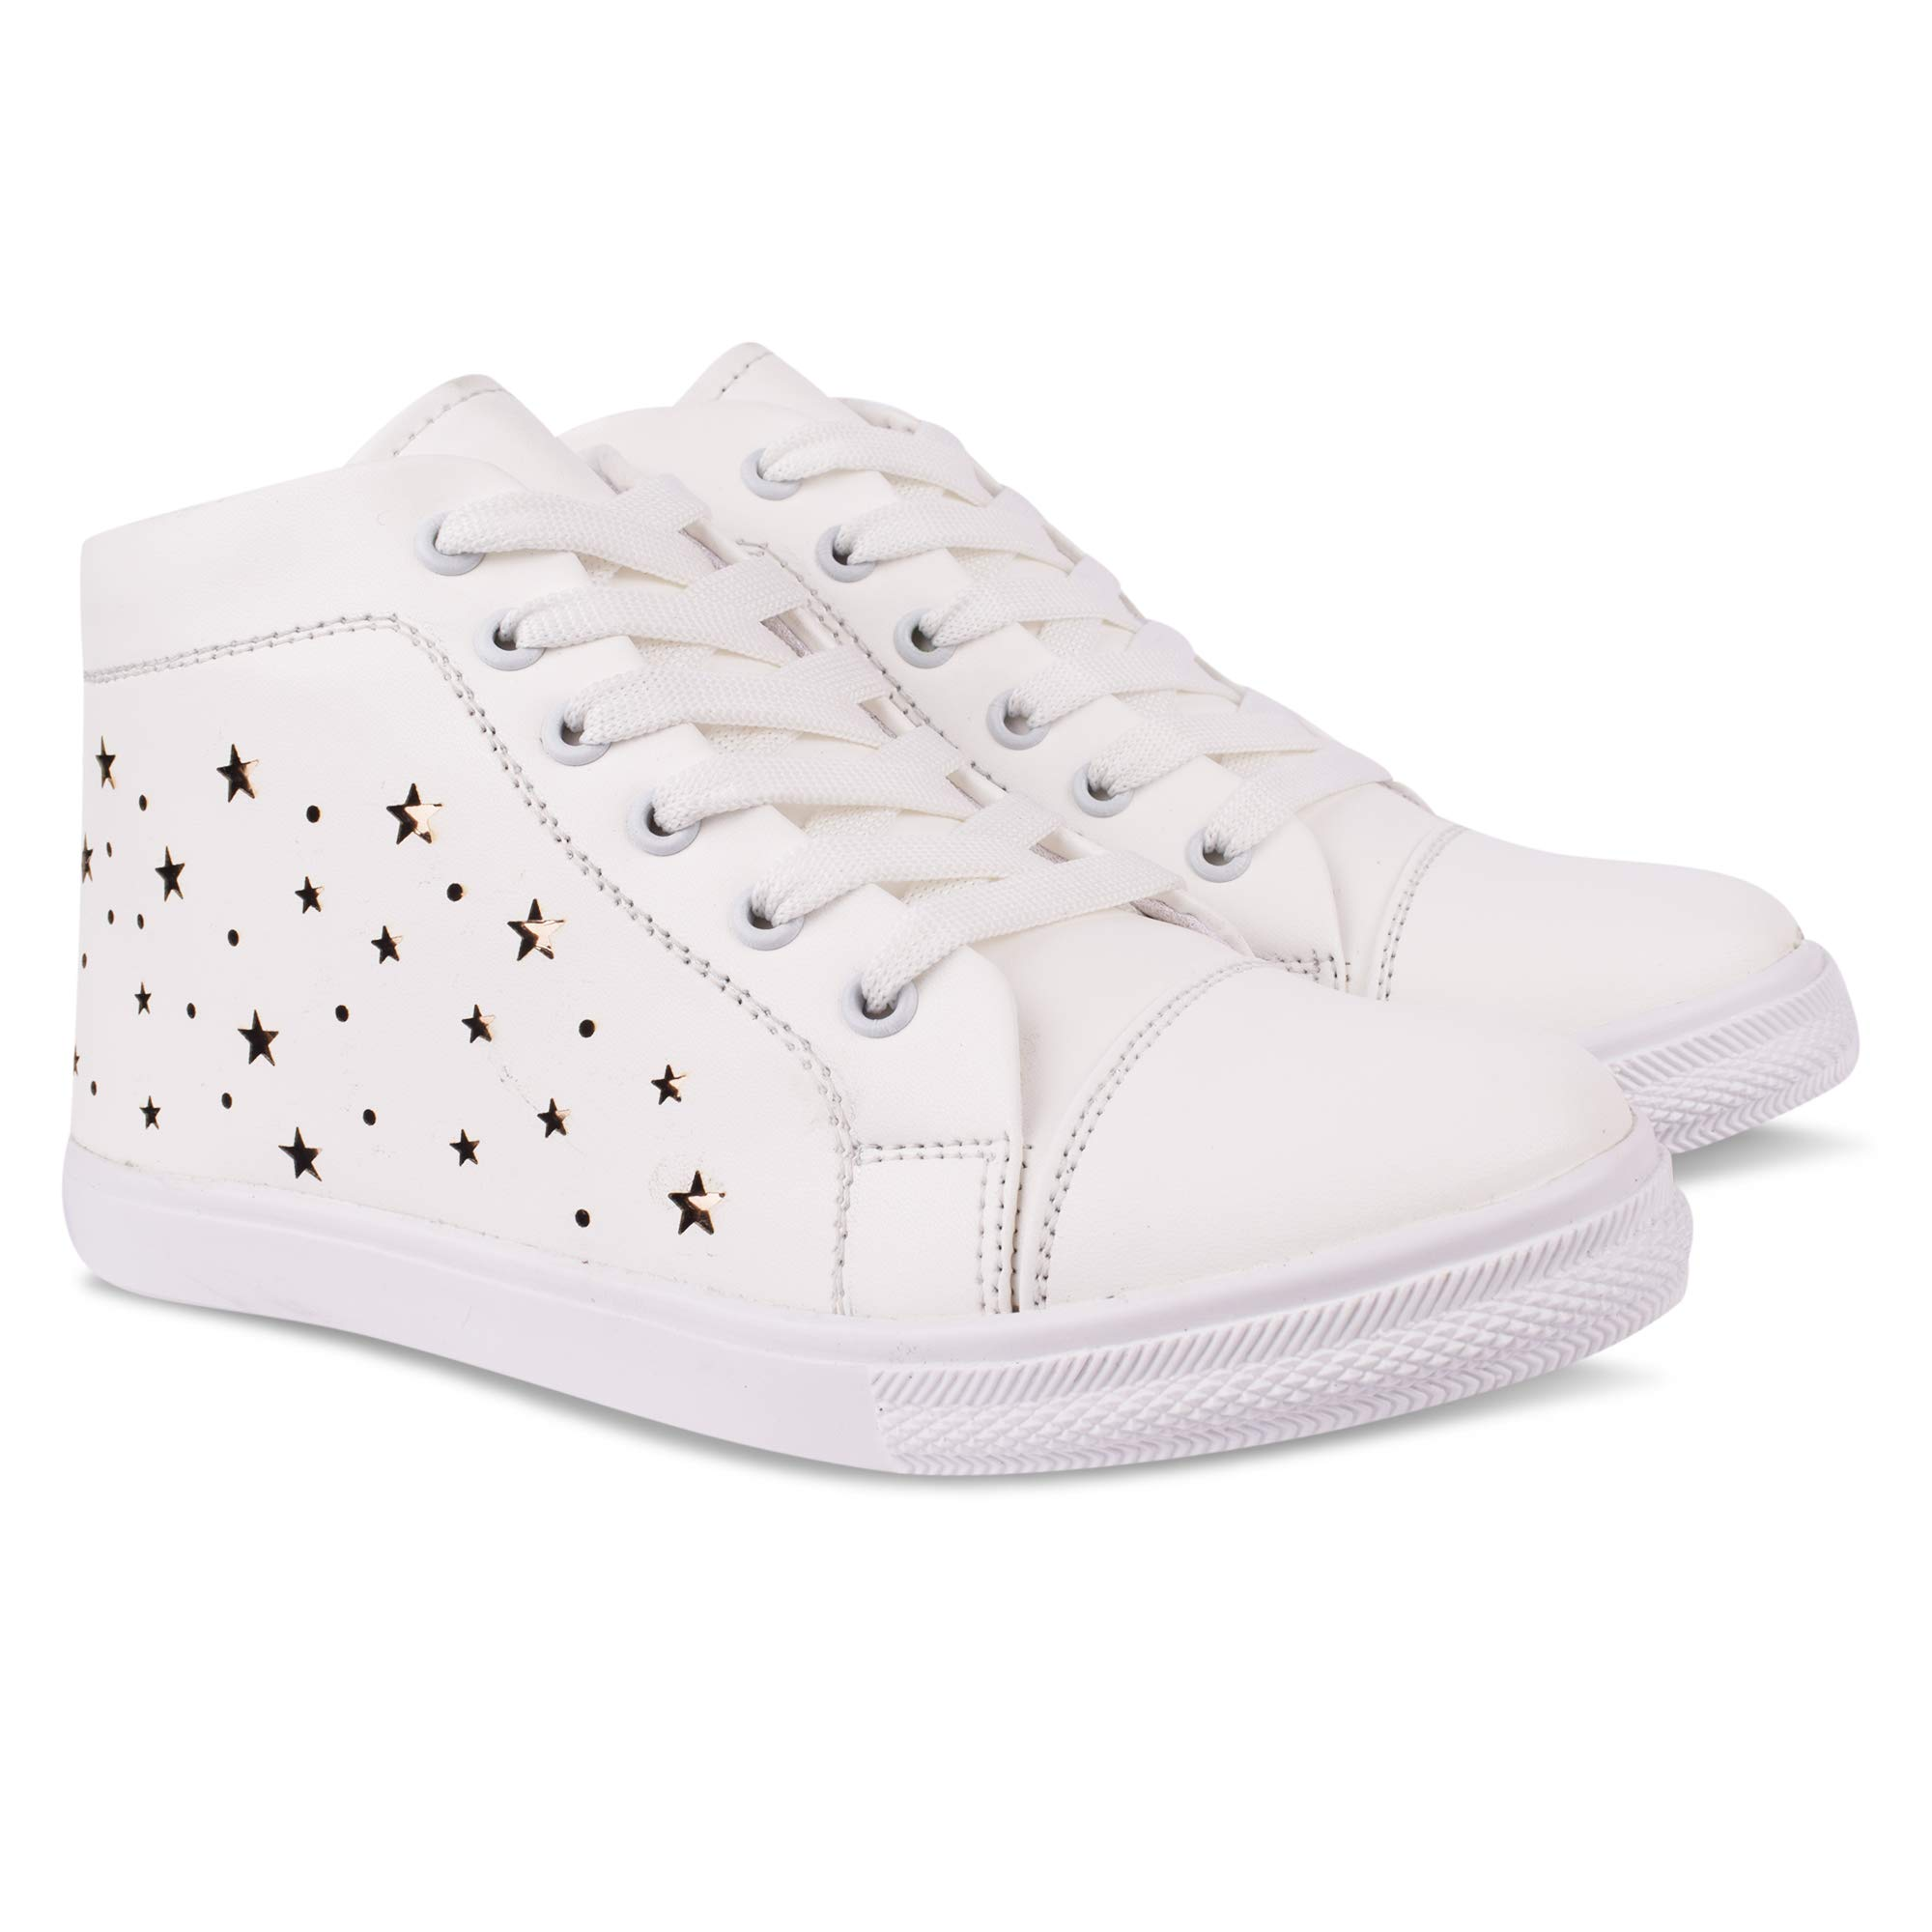 ZOVIM Women Casual Sneakers Shoes